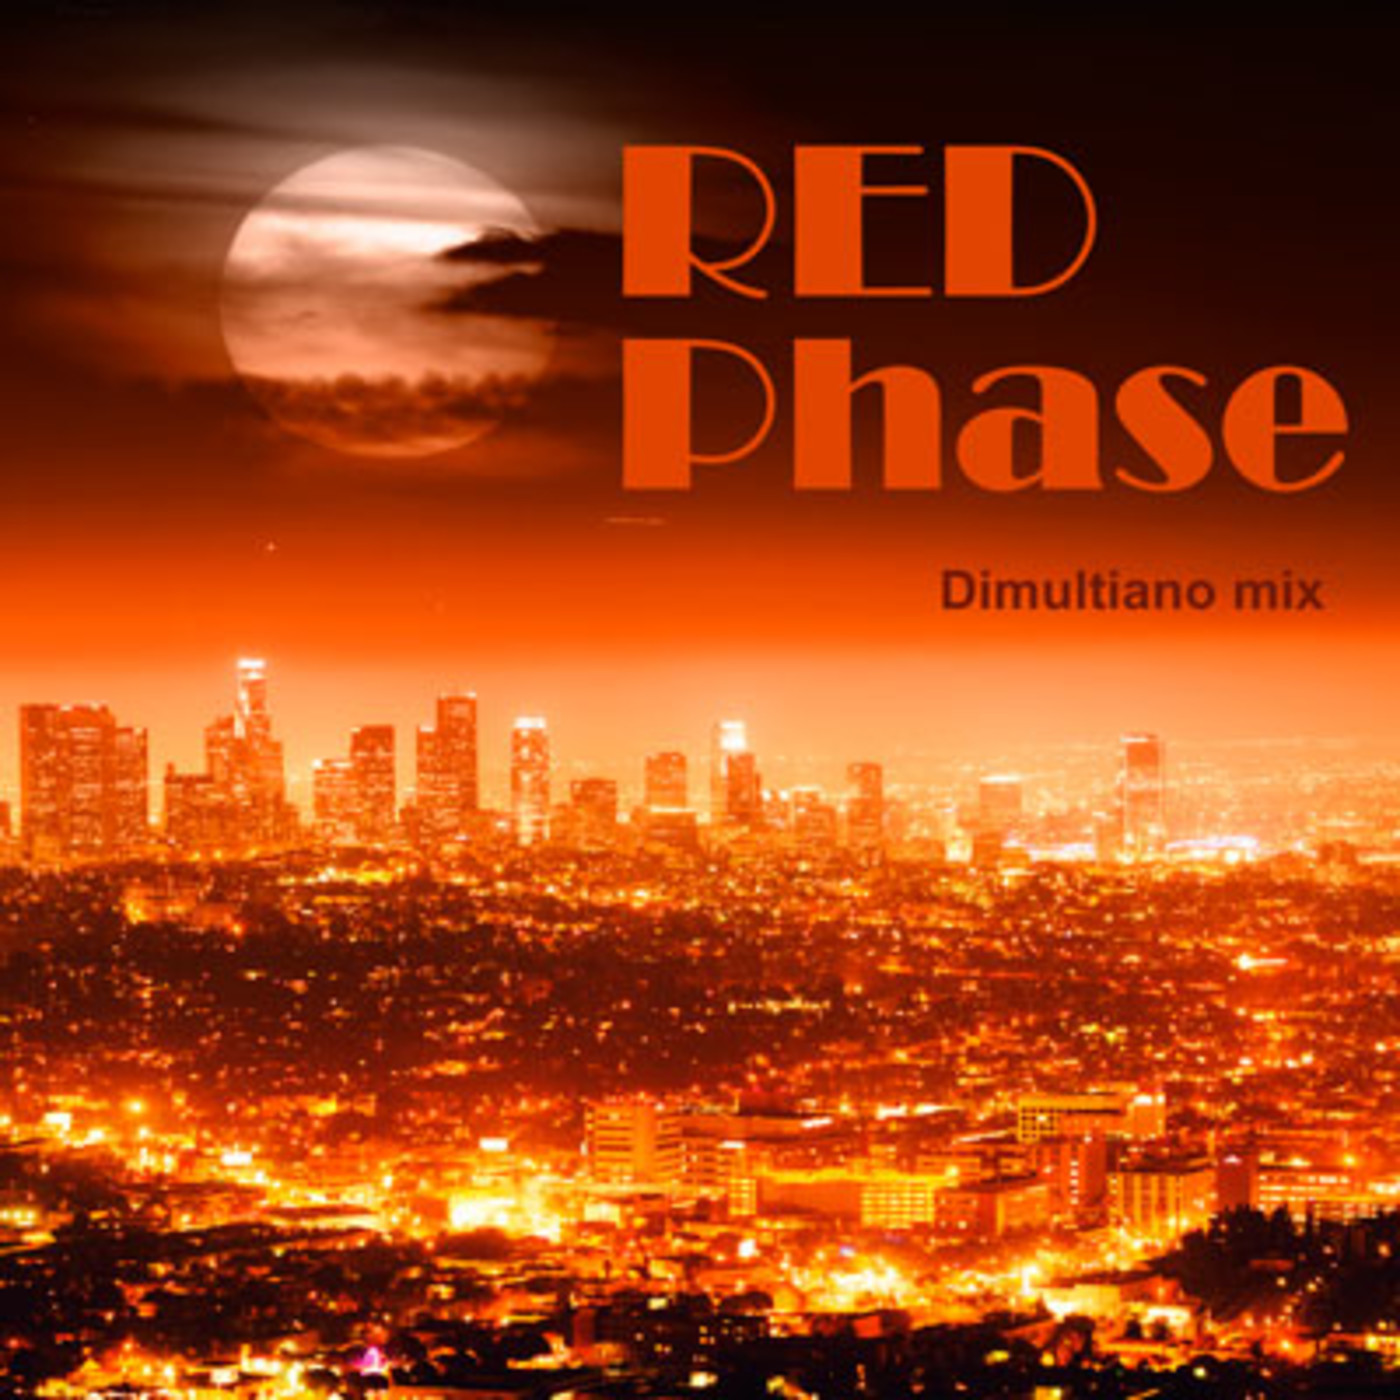 Dimultiano mix - RED Phase